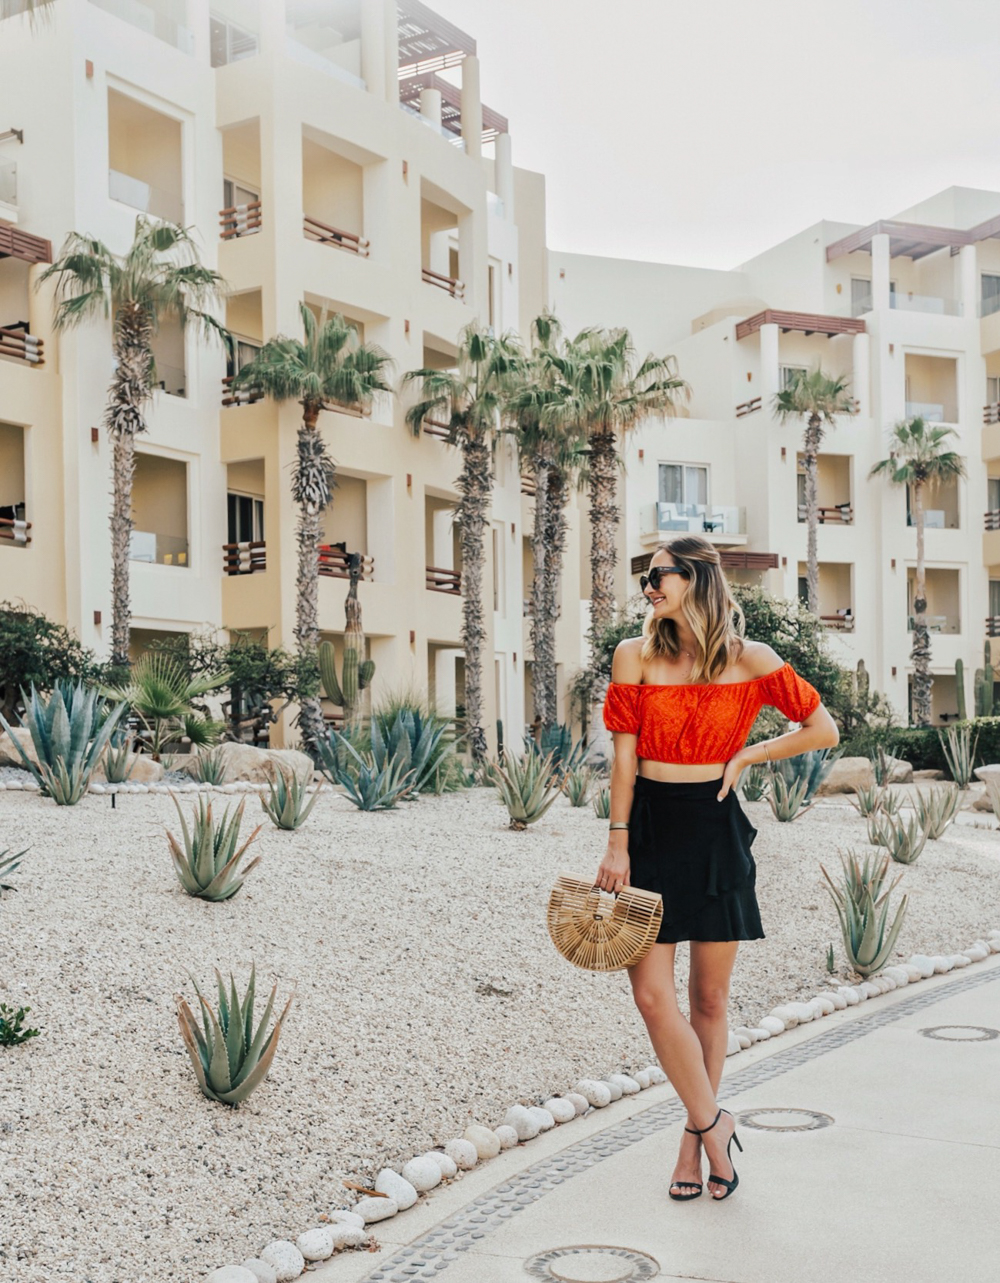 livvyland-blog-olivia-watson-travel-fashion-blogger-pueblo-bonito-pacifica-luxury-resort-los-cabos-cabo-mexico-vacation-2